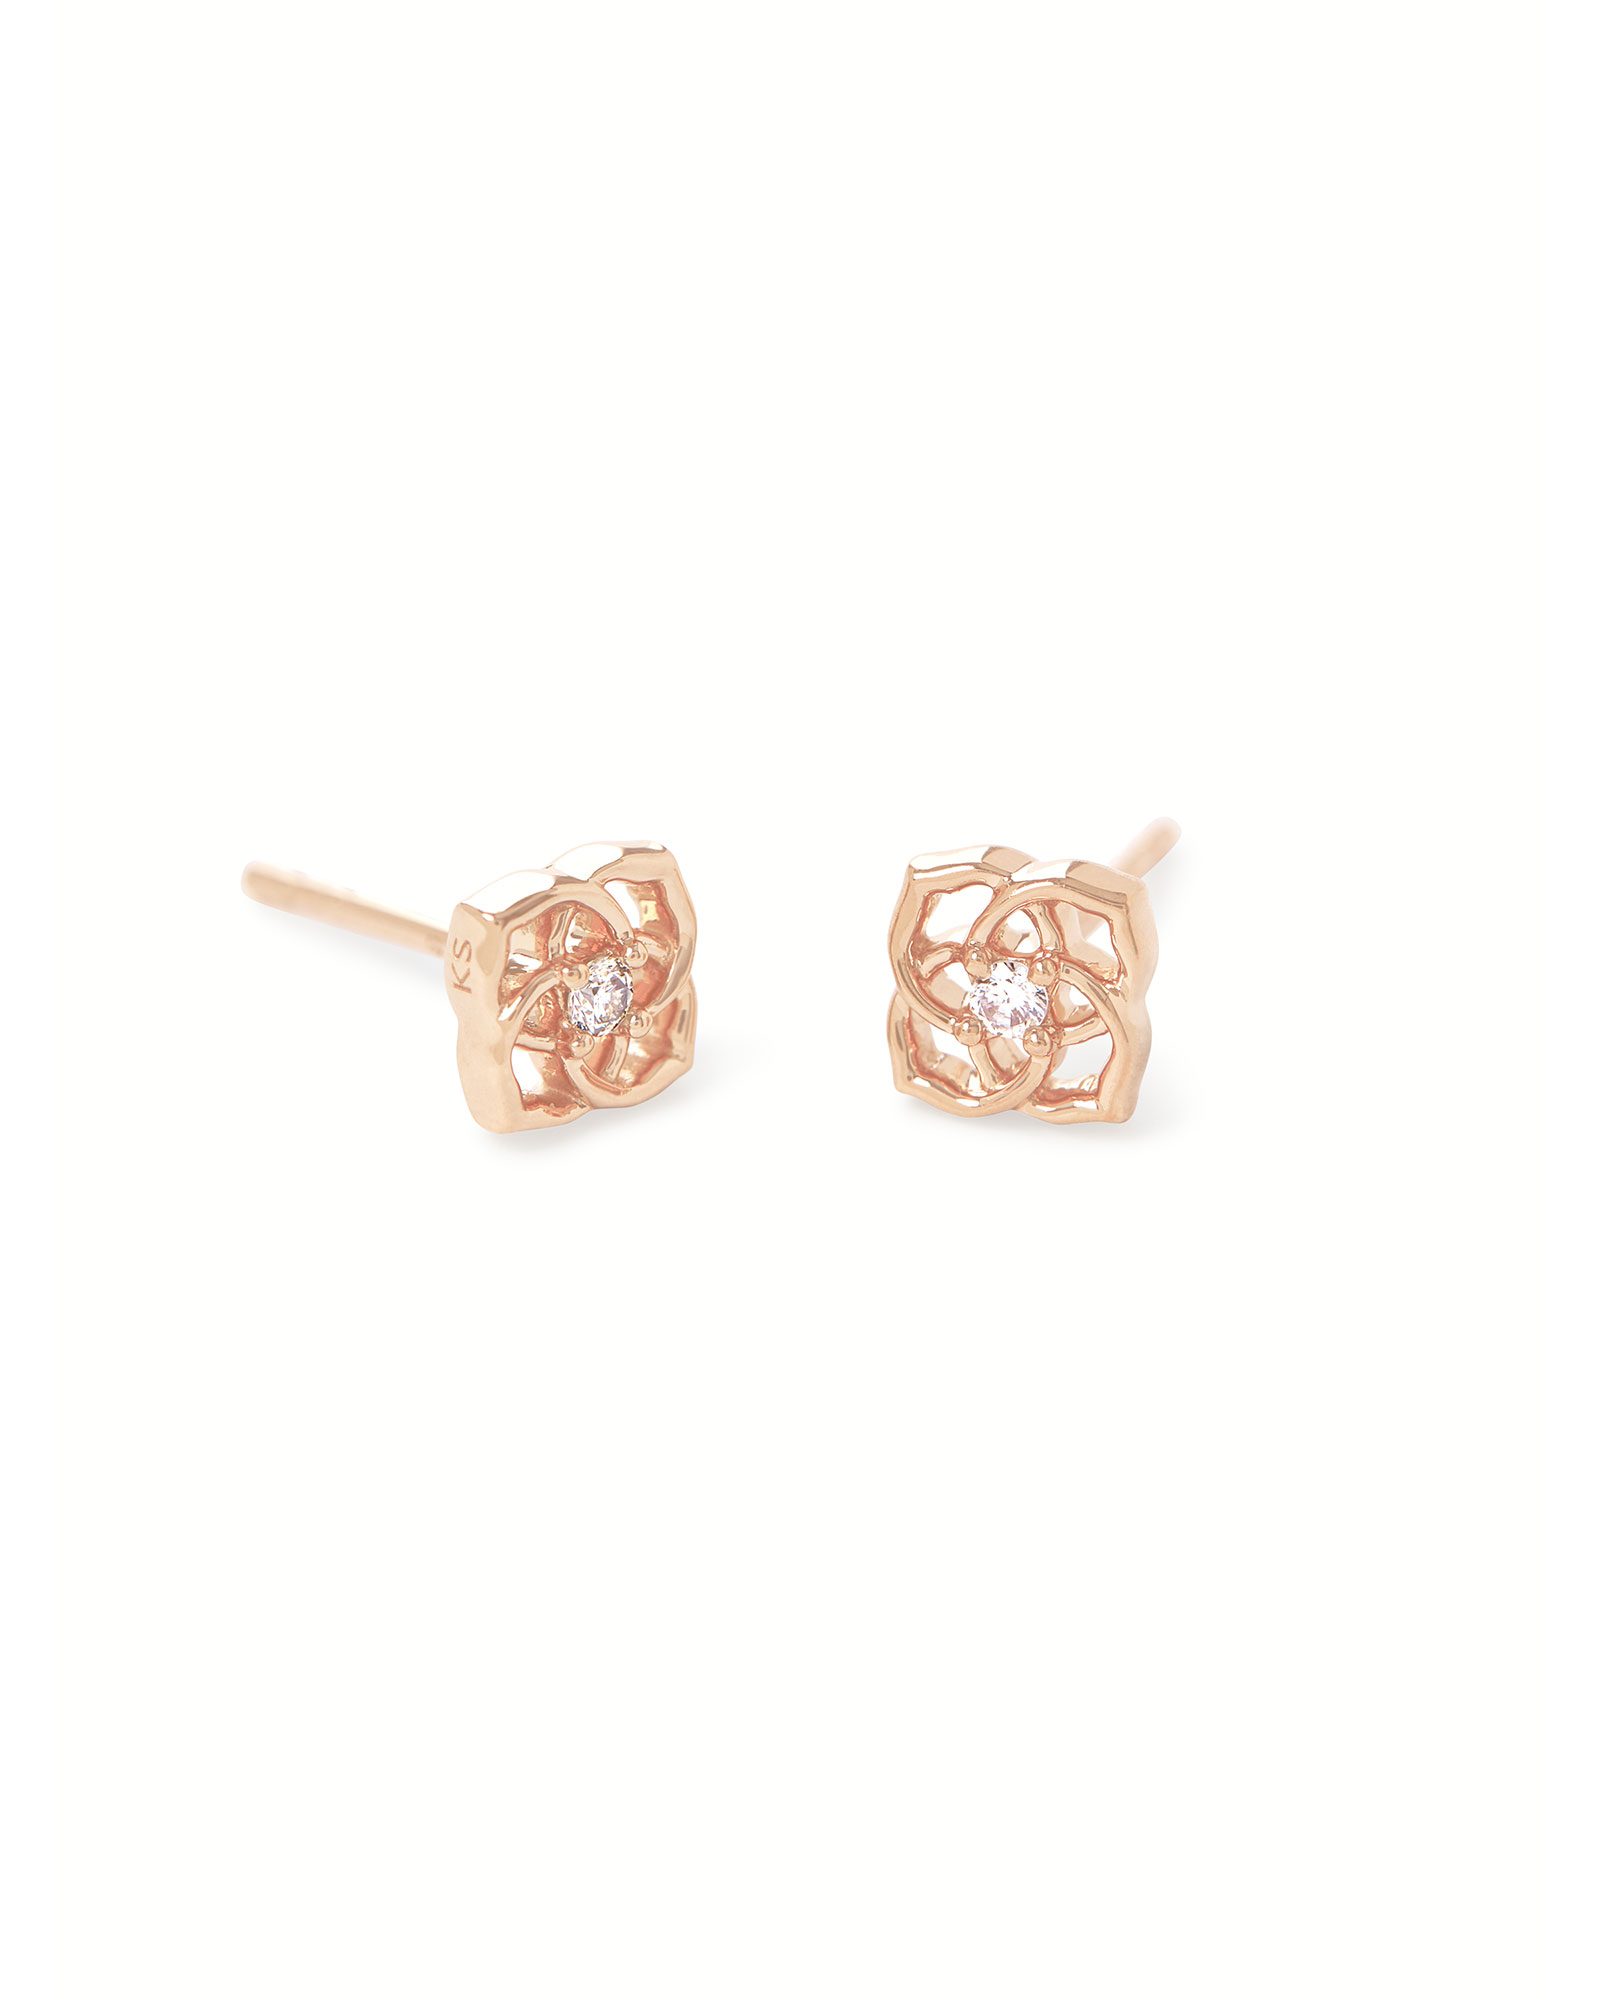 Fleur 14k Rose Gold Small Stud Earrings in White Diamond